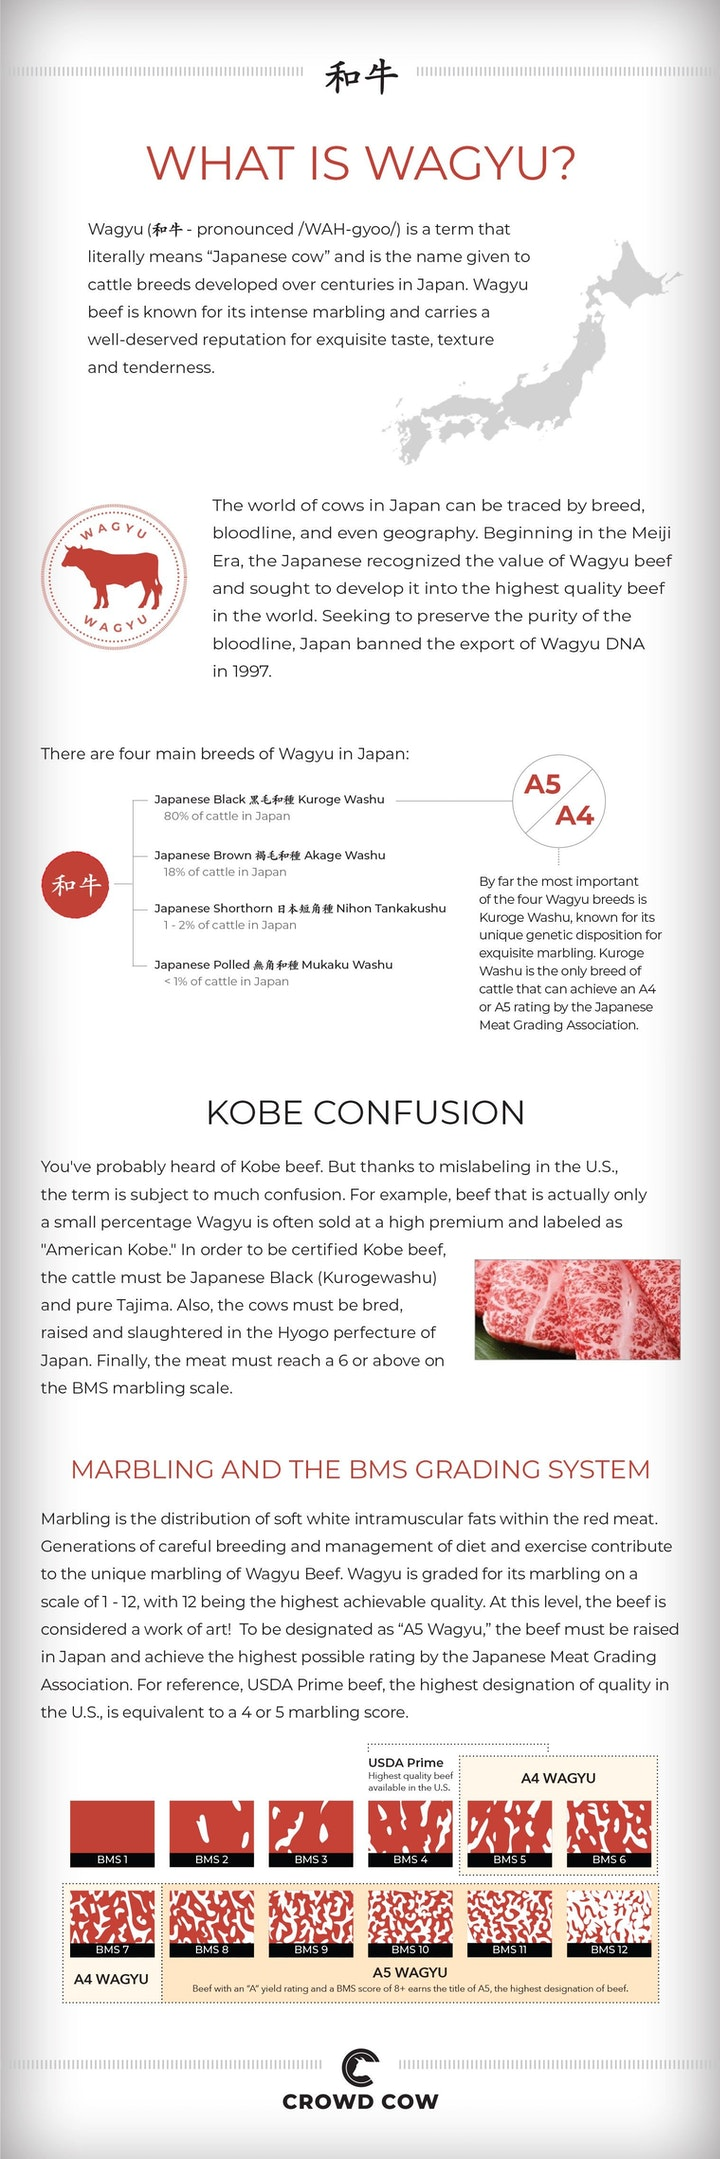 Updated-Wagyu-Infographic-6.12.20-cropped